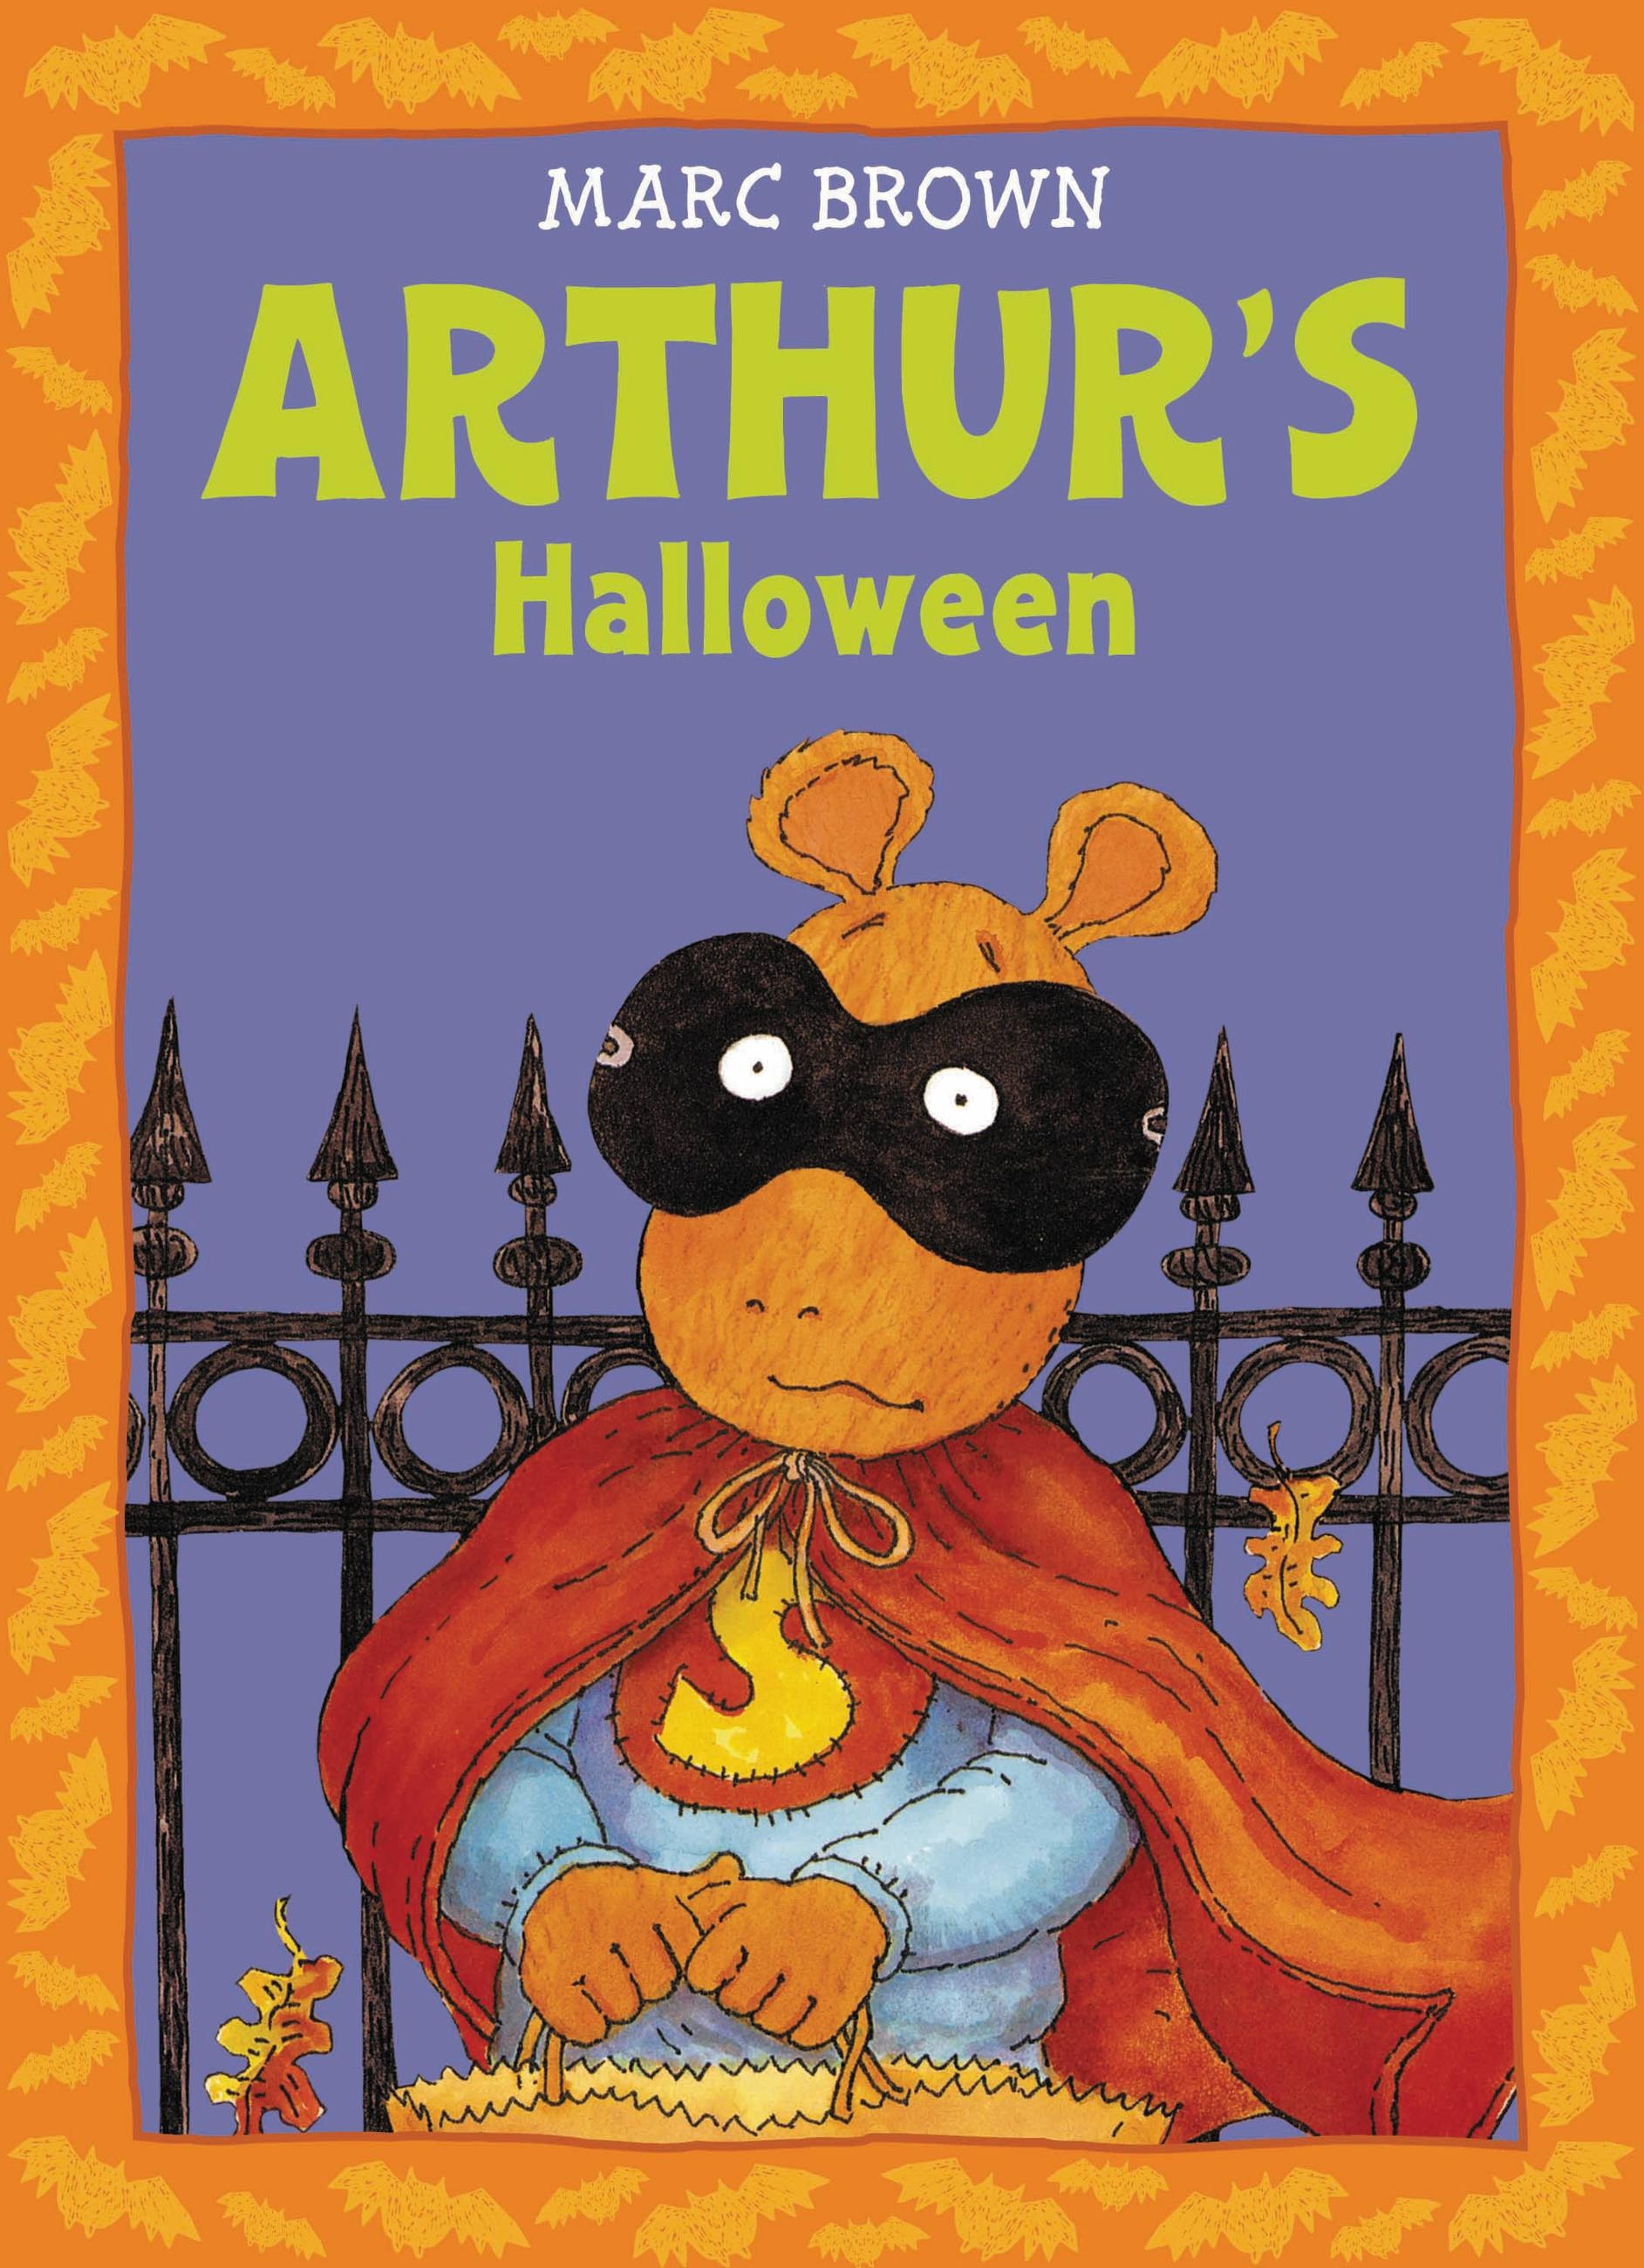 arthurs halloween by marc brown little brown books for young readers